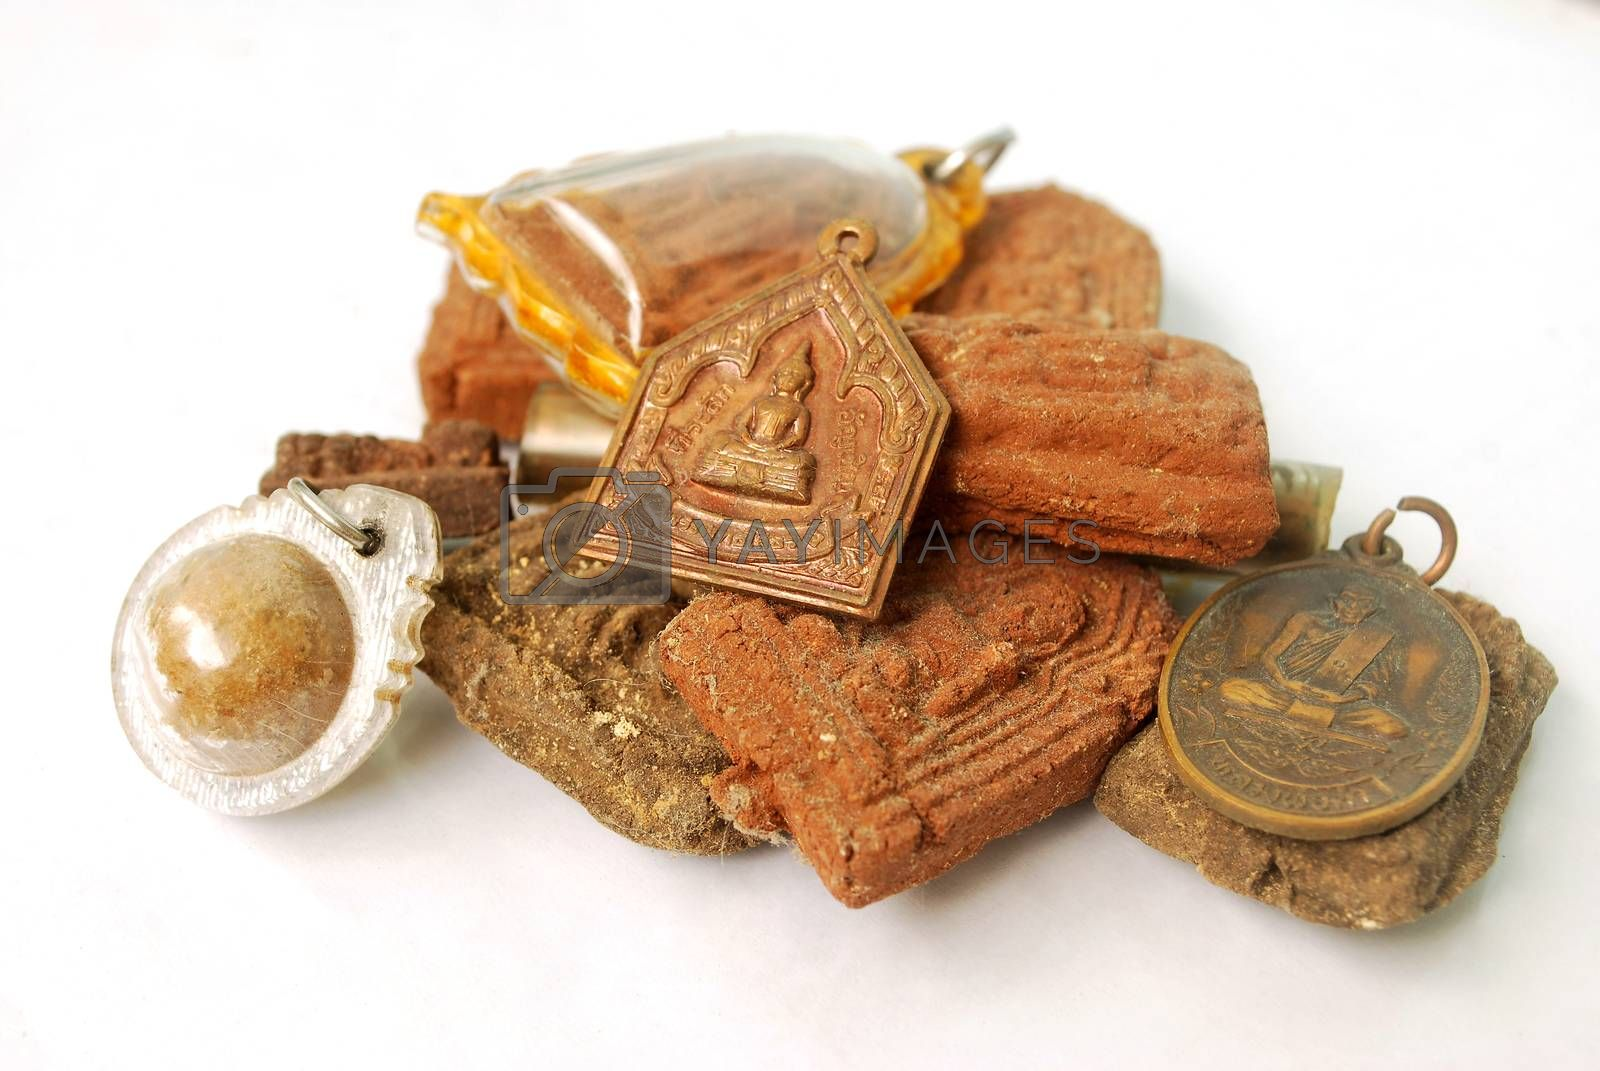 Thai sacred objects by thitimon